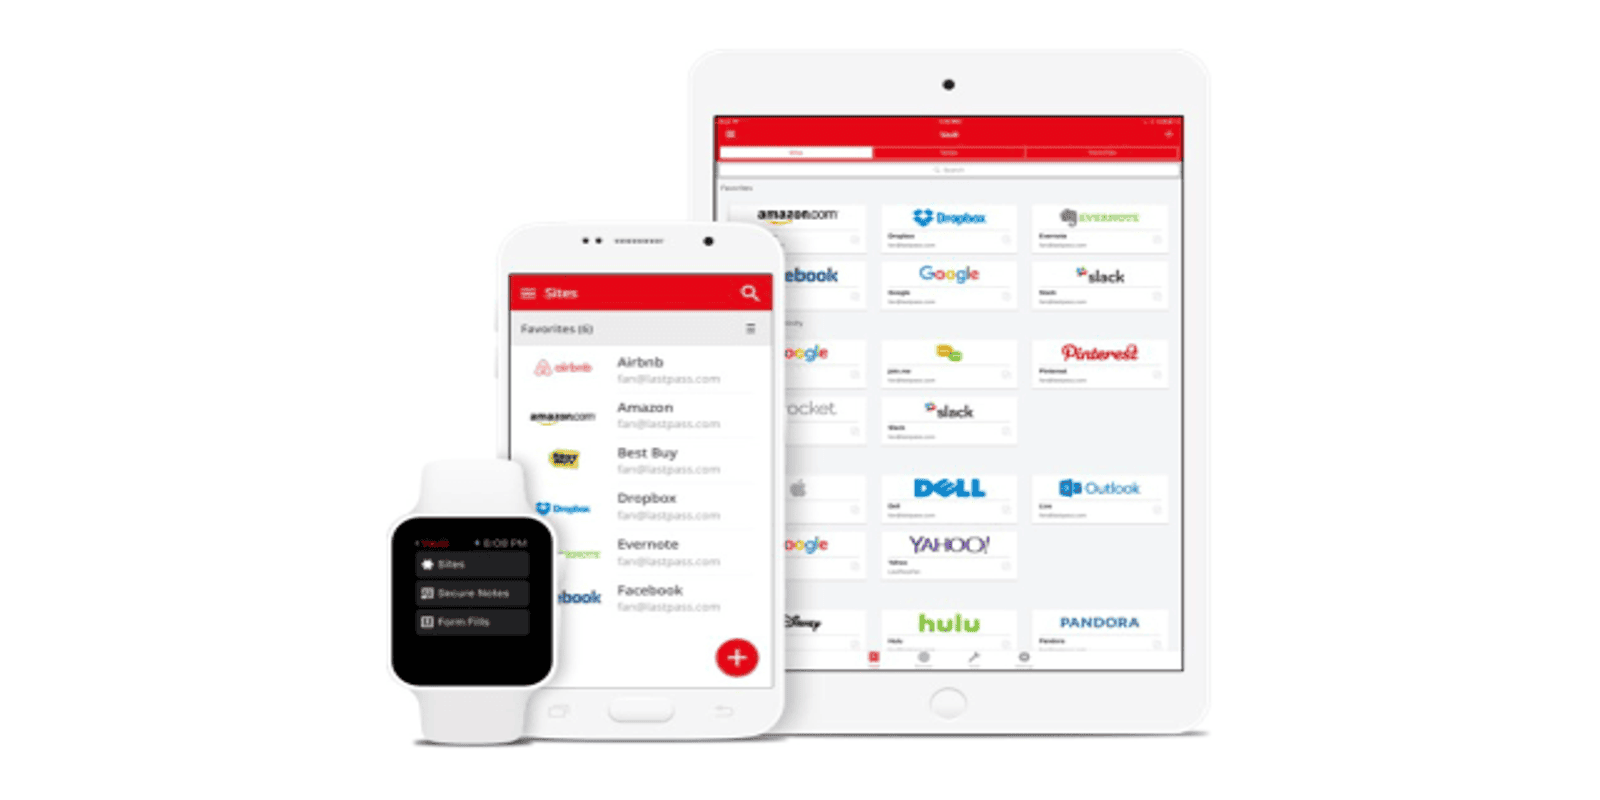 LastPass to limit its free password manager. Here are other options, including Apple, Google